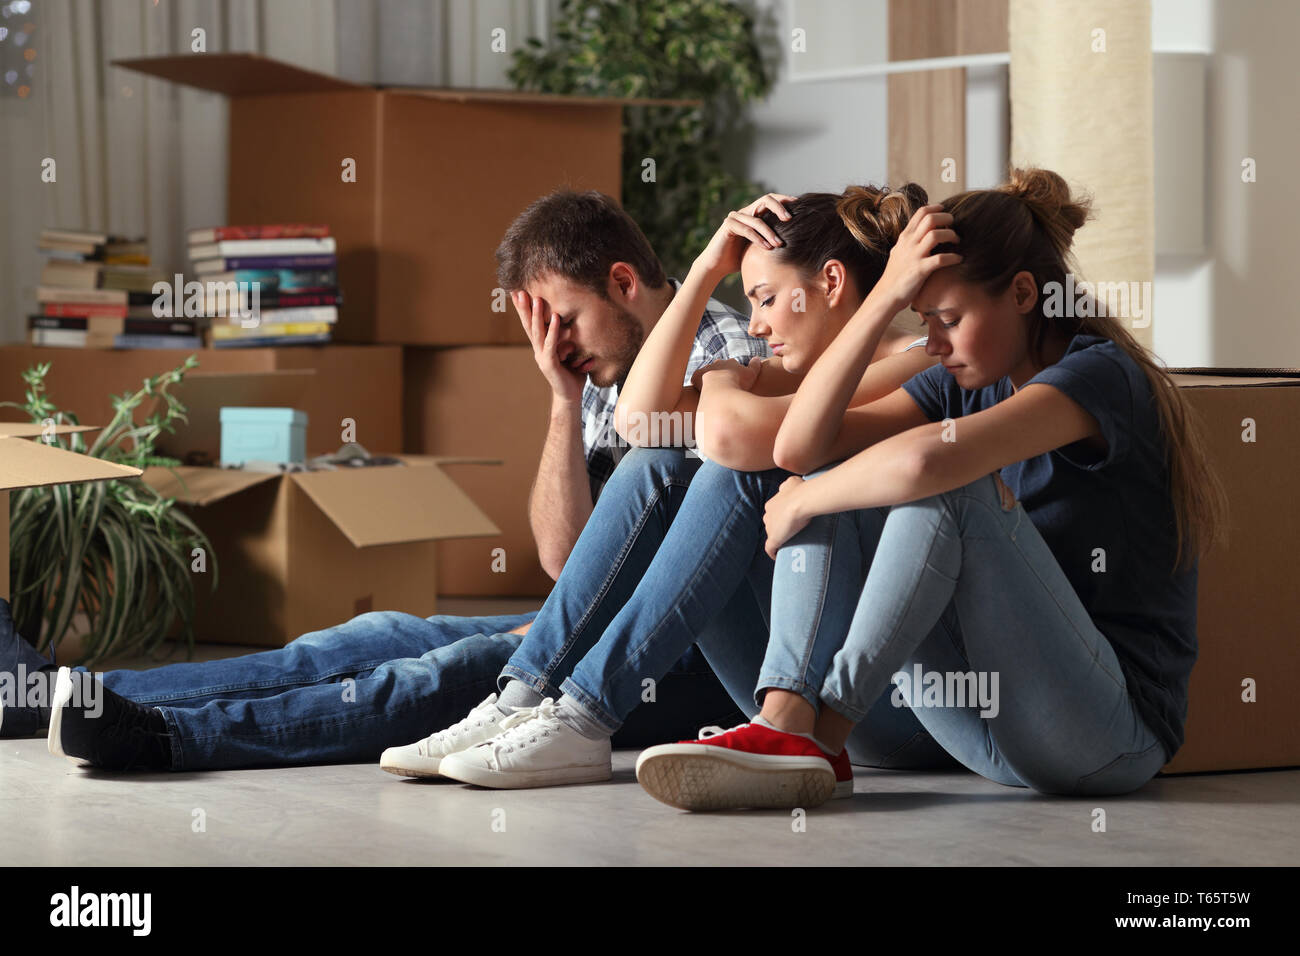 Three sad evicted roommates moving home complaining sitting on the floor - Stock Image